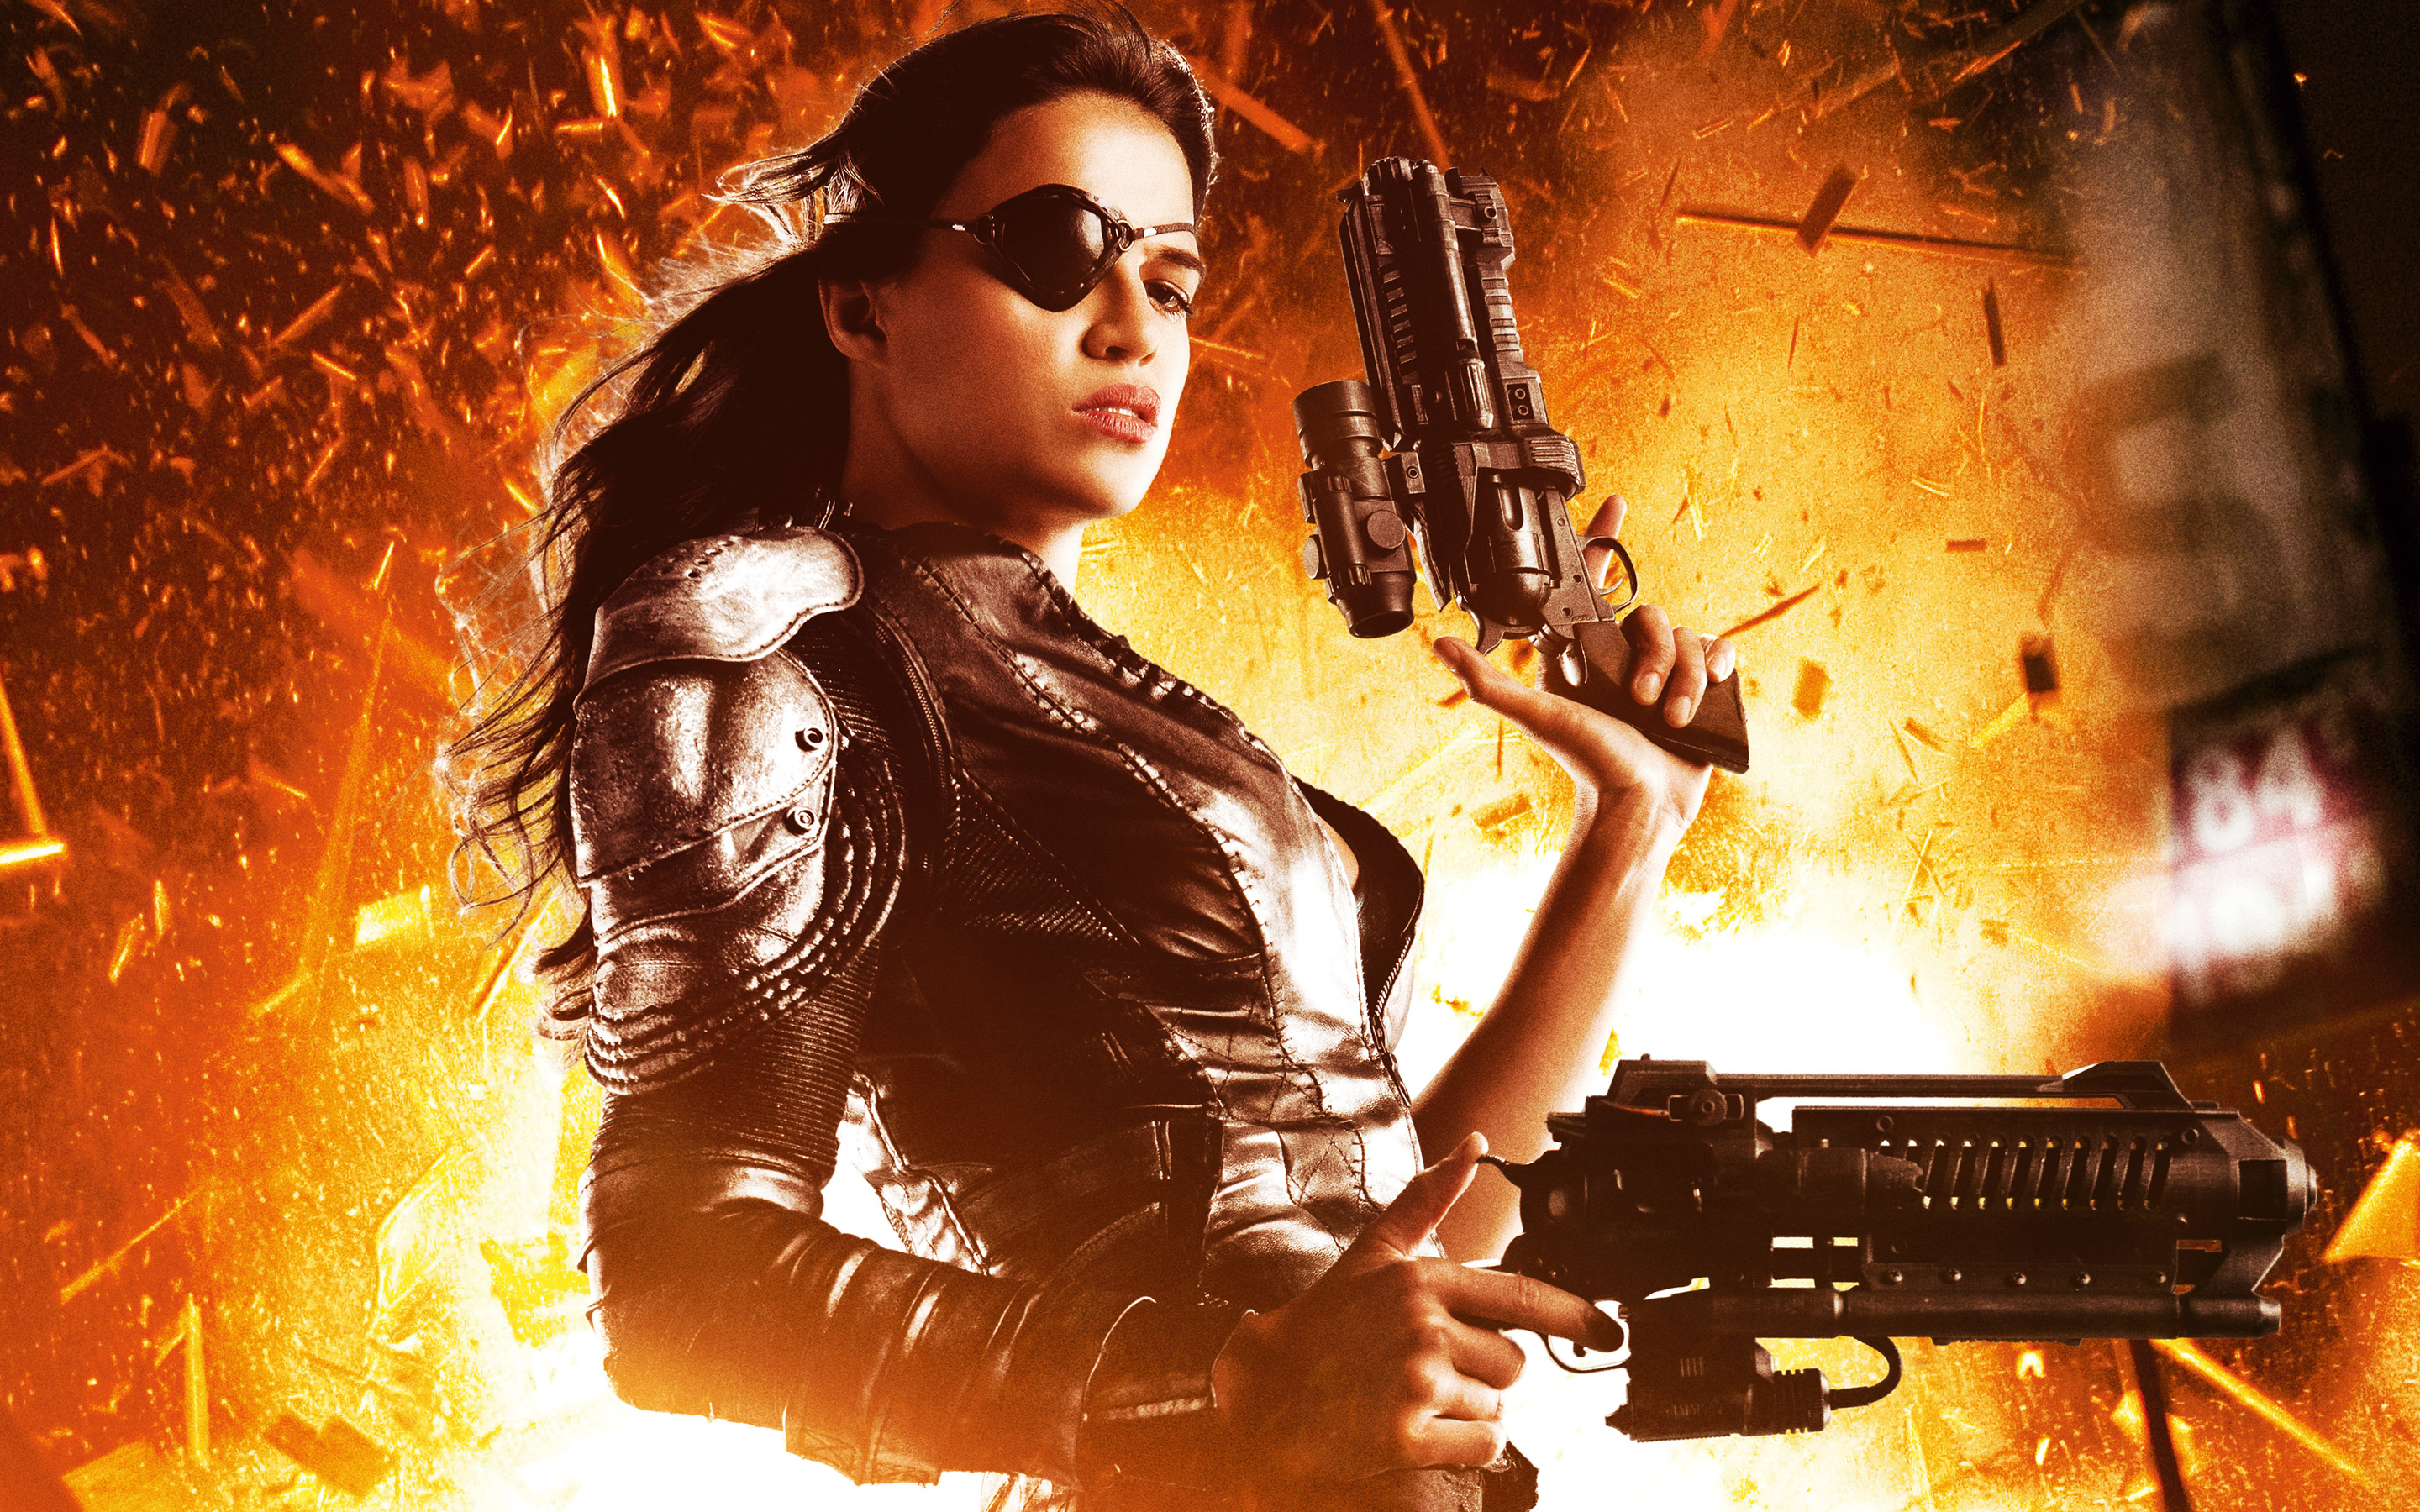 Machete Kills Michelle Rodriguez 3111.26 Kb